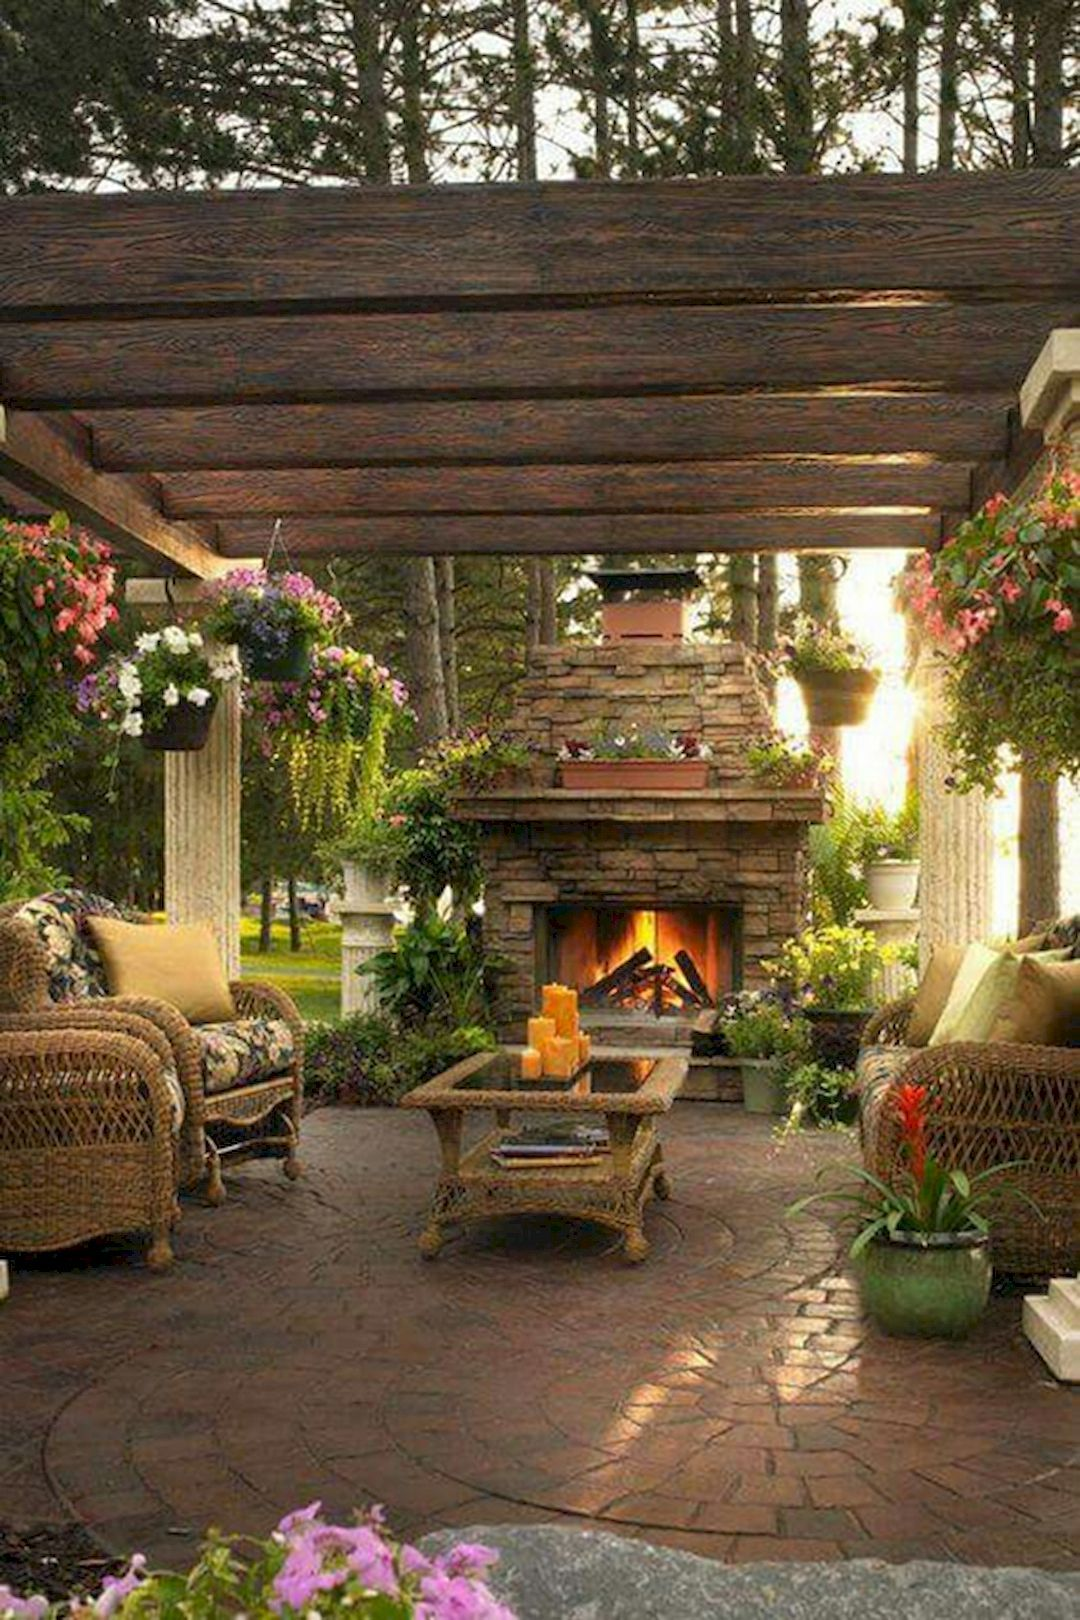 Outdoor Kitchen And Patio Ideas Html on deck lighting ideas, patio and outdoor fireplaces, outdoor patio lighting ideas, outdoor patio pergola ideas, swimming pool and outdoor kitchen ideas, outside patio ideas, patio and outdoor bar ideas, patio design ideas, patio decorating ideas, patio and outdoor furniture, patio ideas on a budget, diy outdoor kitchen ideas, inexpensive outdoor patio ideas, patio and outdoor kitchen plan, storage shed and outdoor kitchen ideas,